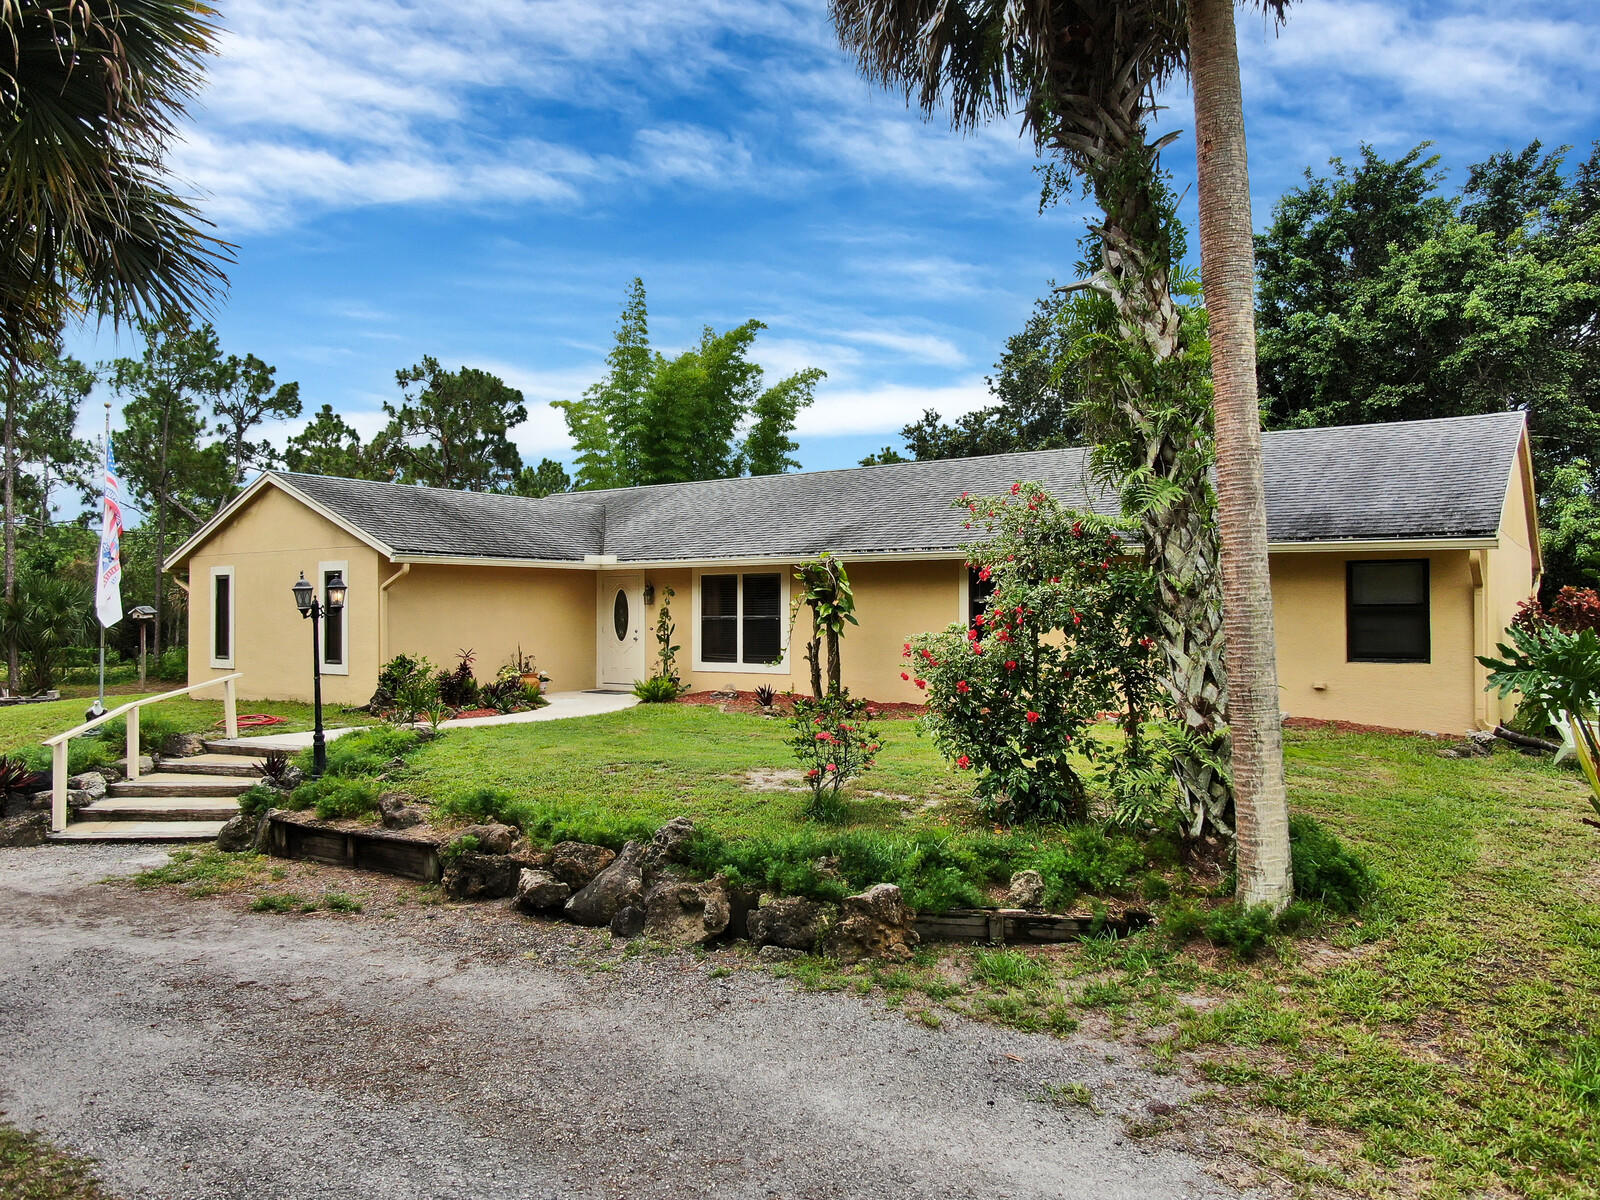 Home for sale in Loxahatchee / The Acreage Loxahatchee Florida